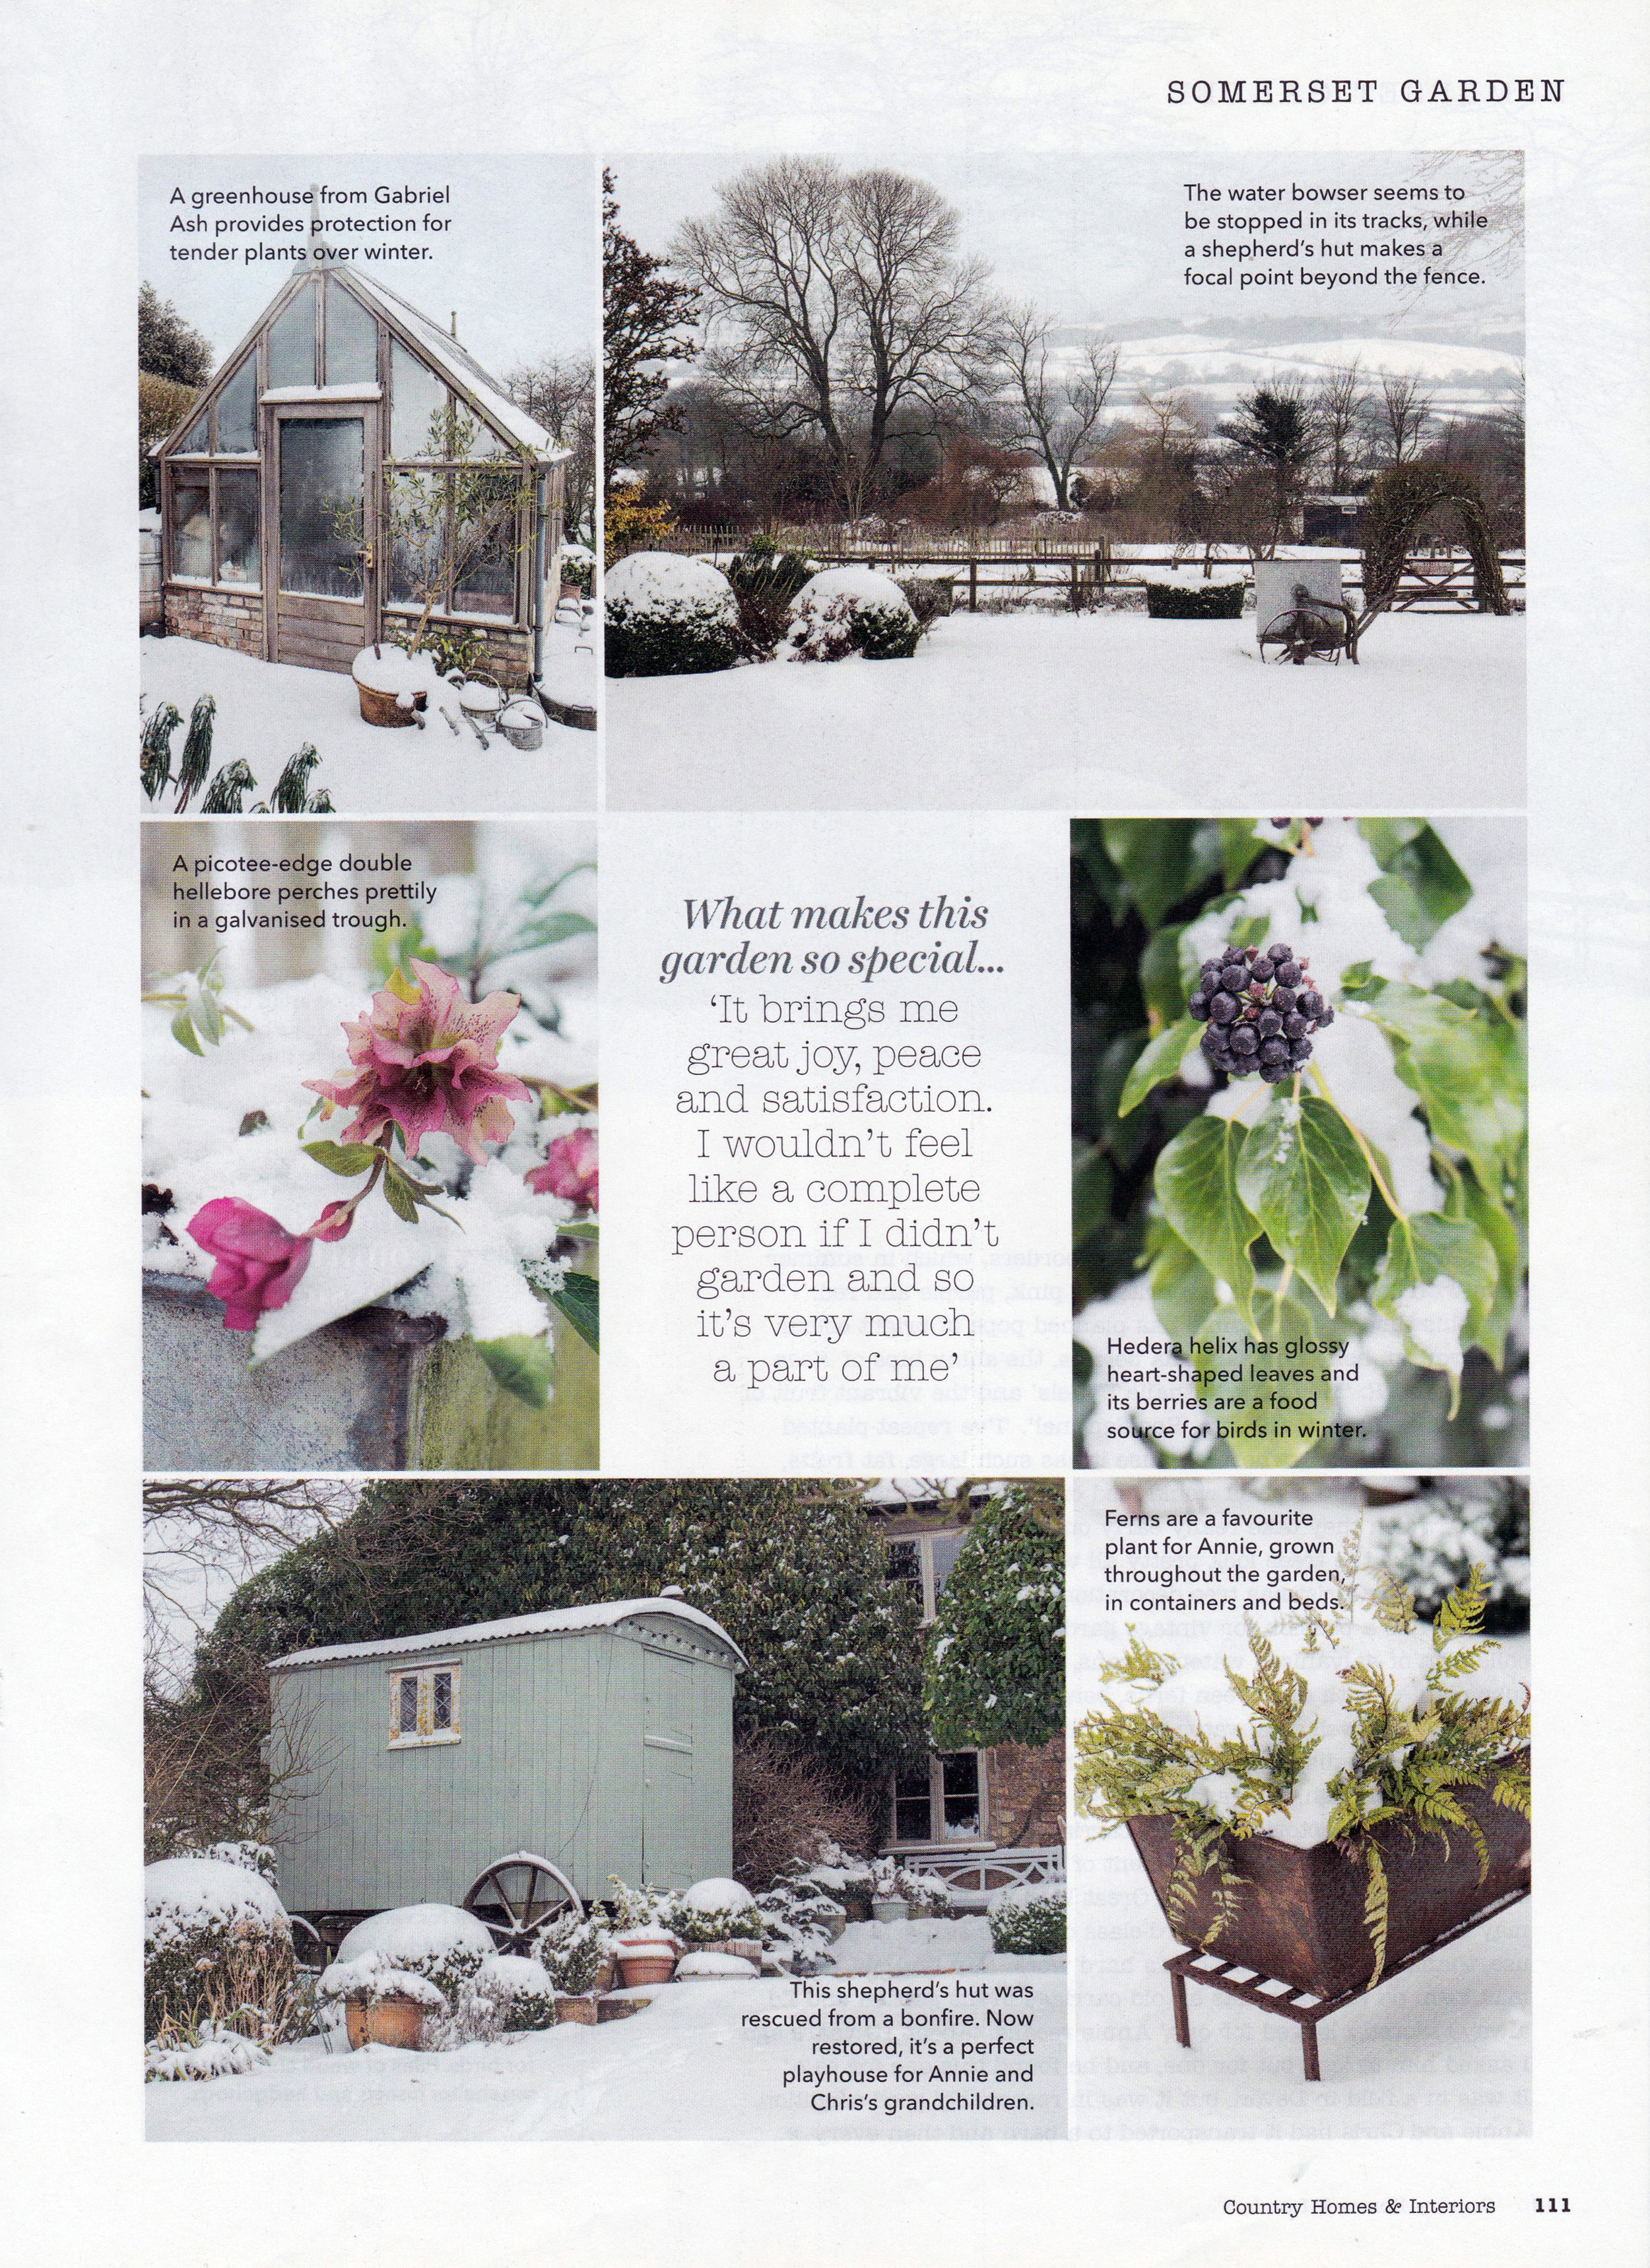 Country Living - A Winter's Tale - Jan 2019 3.jpg